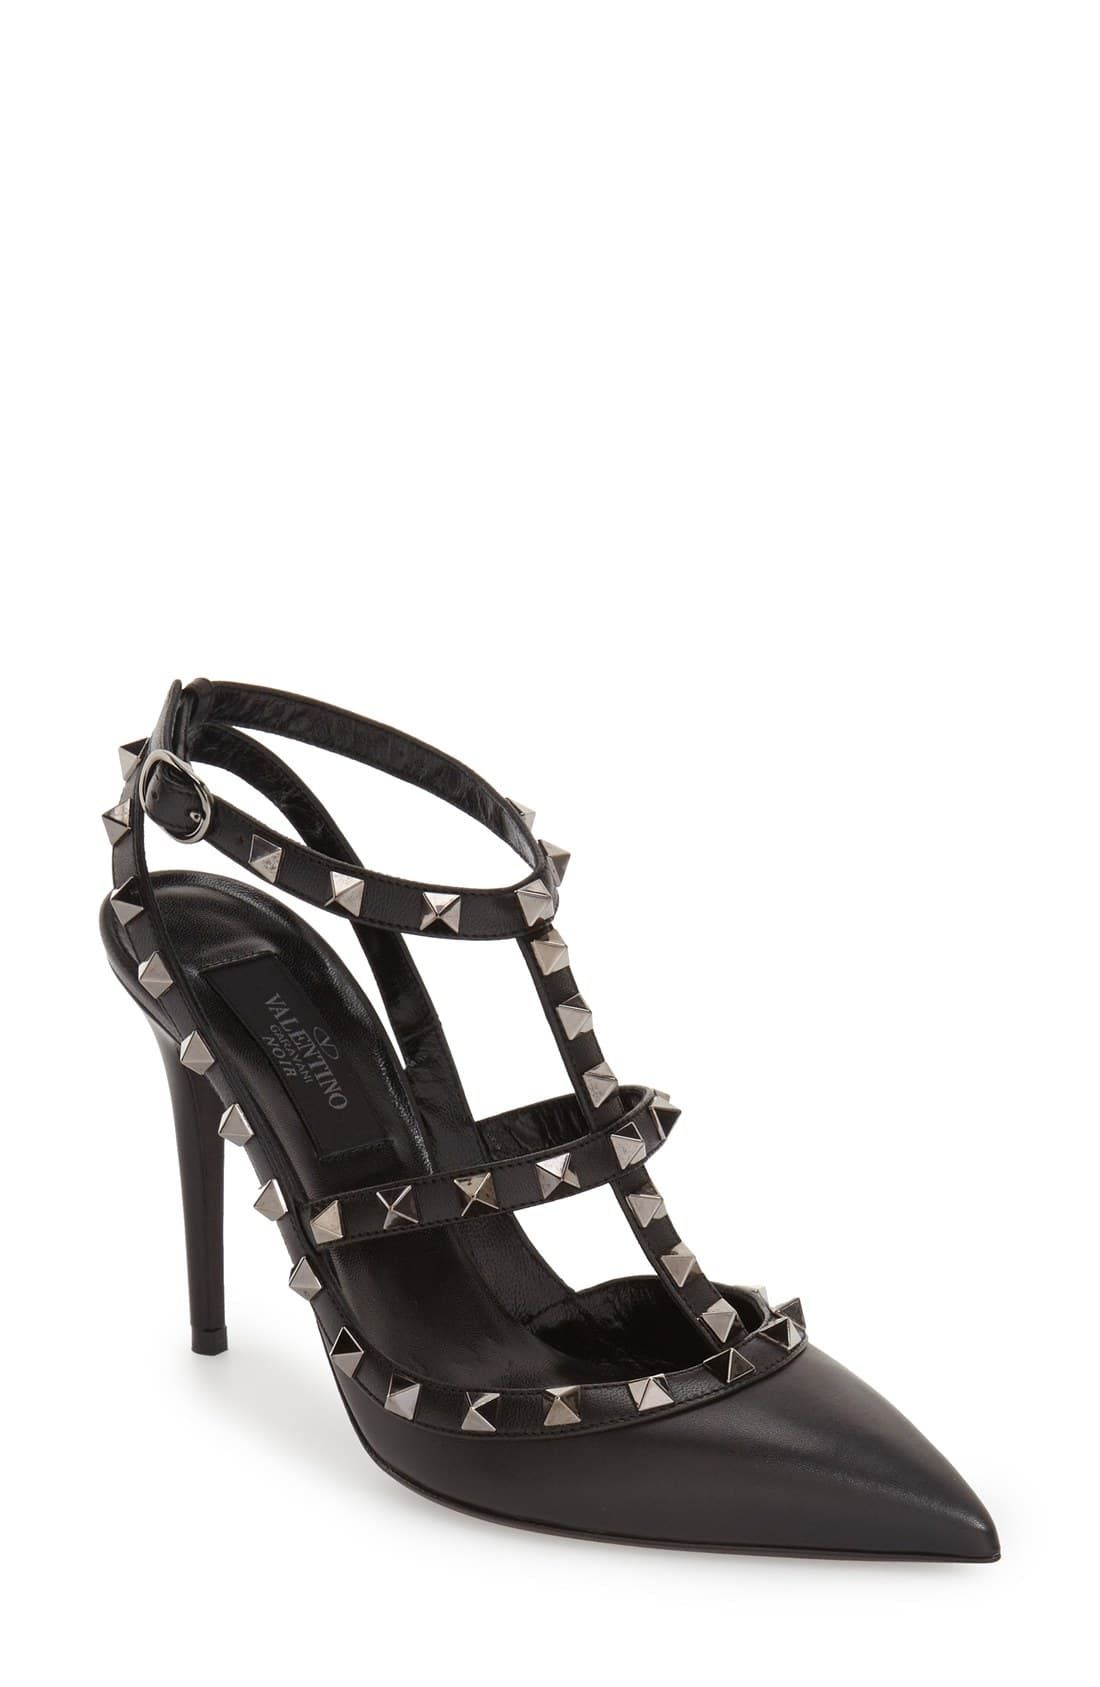 Valentino shoes, Ankle strap shoes